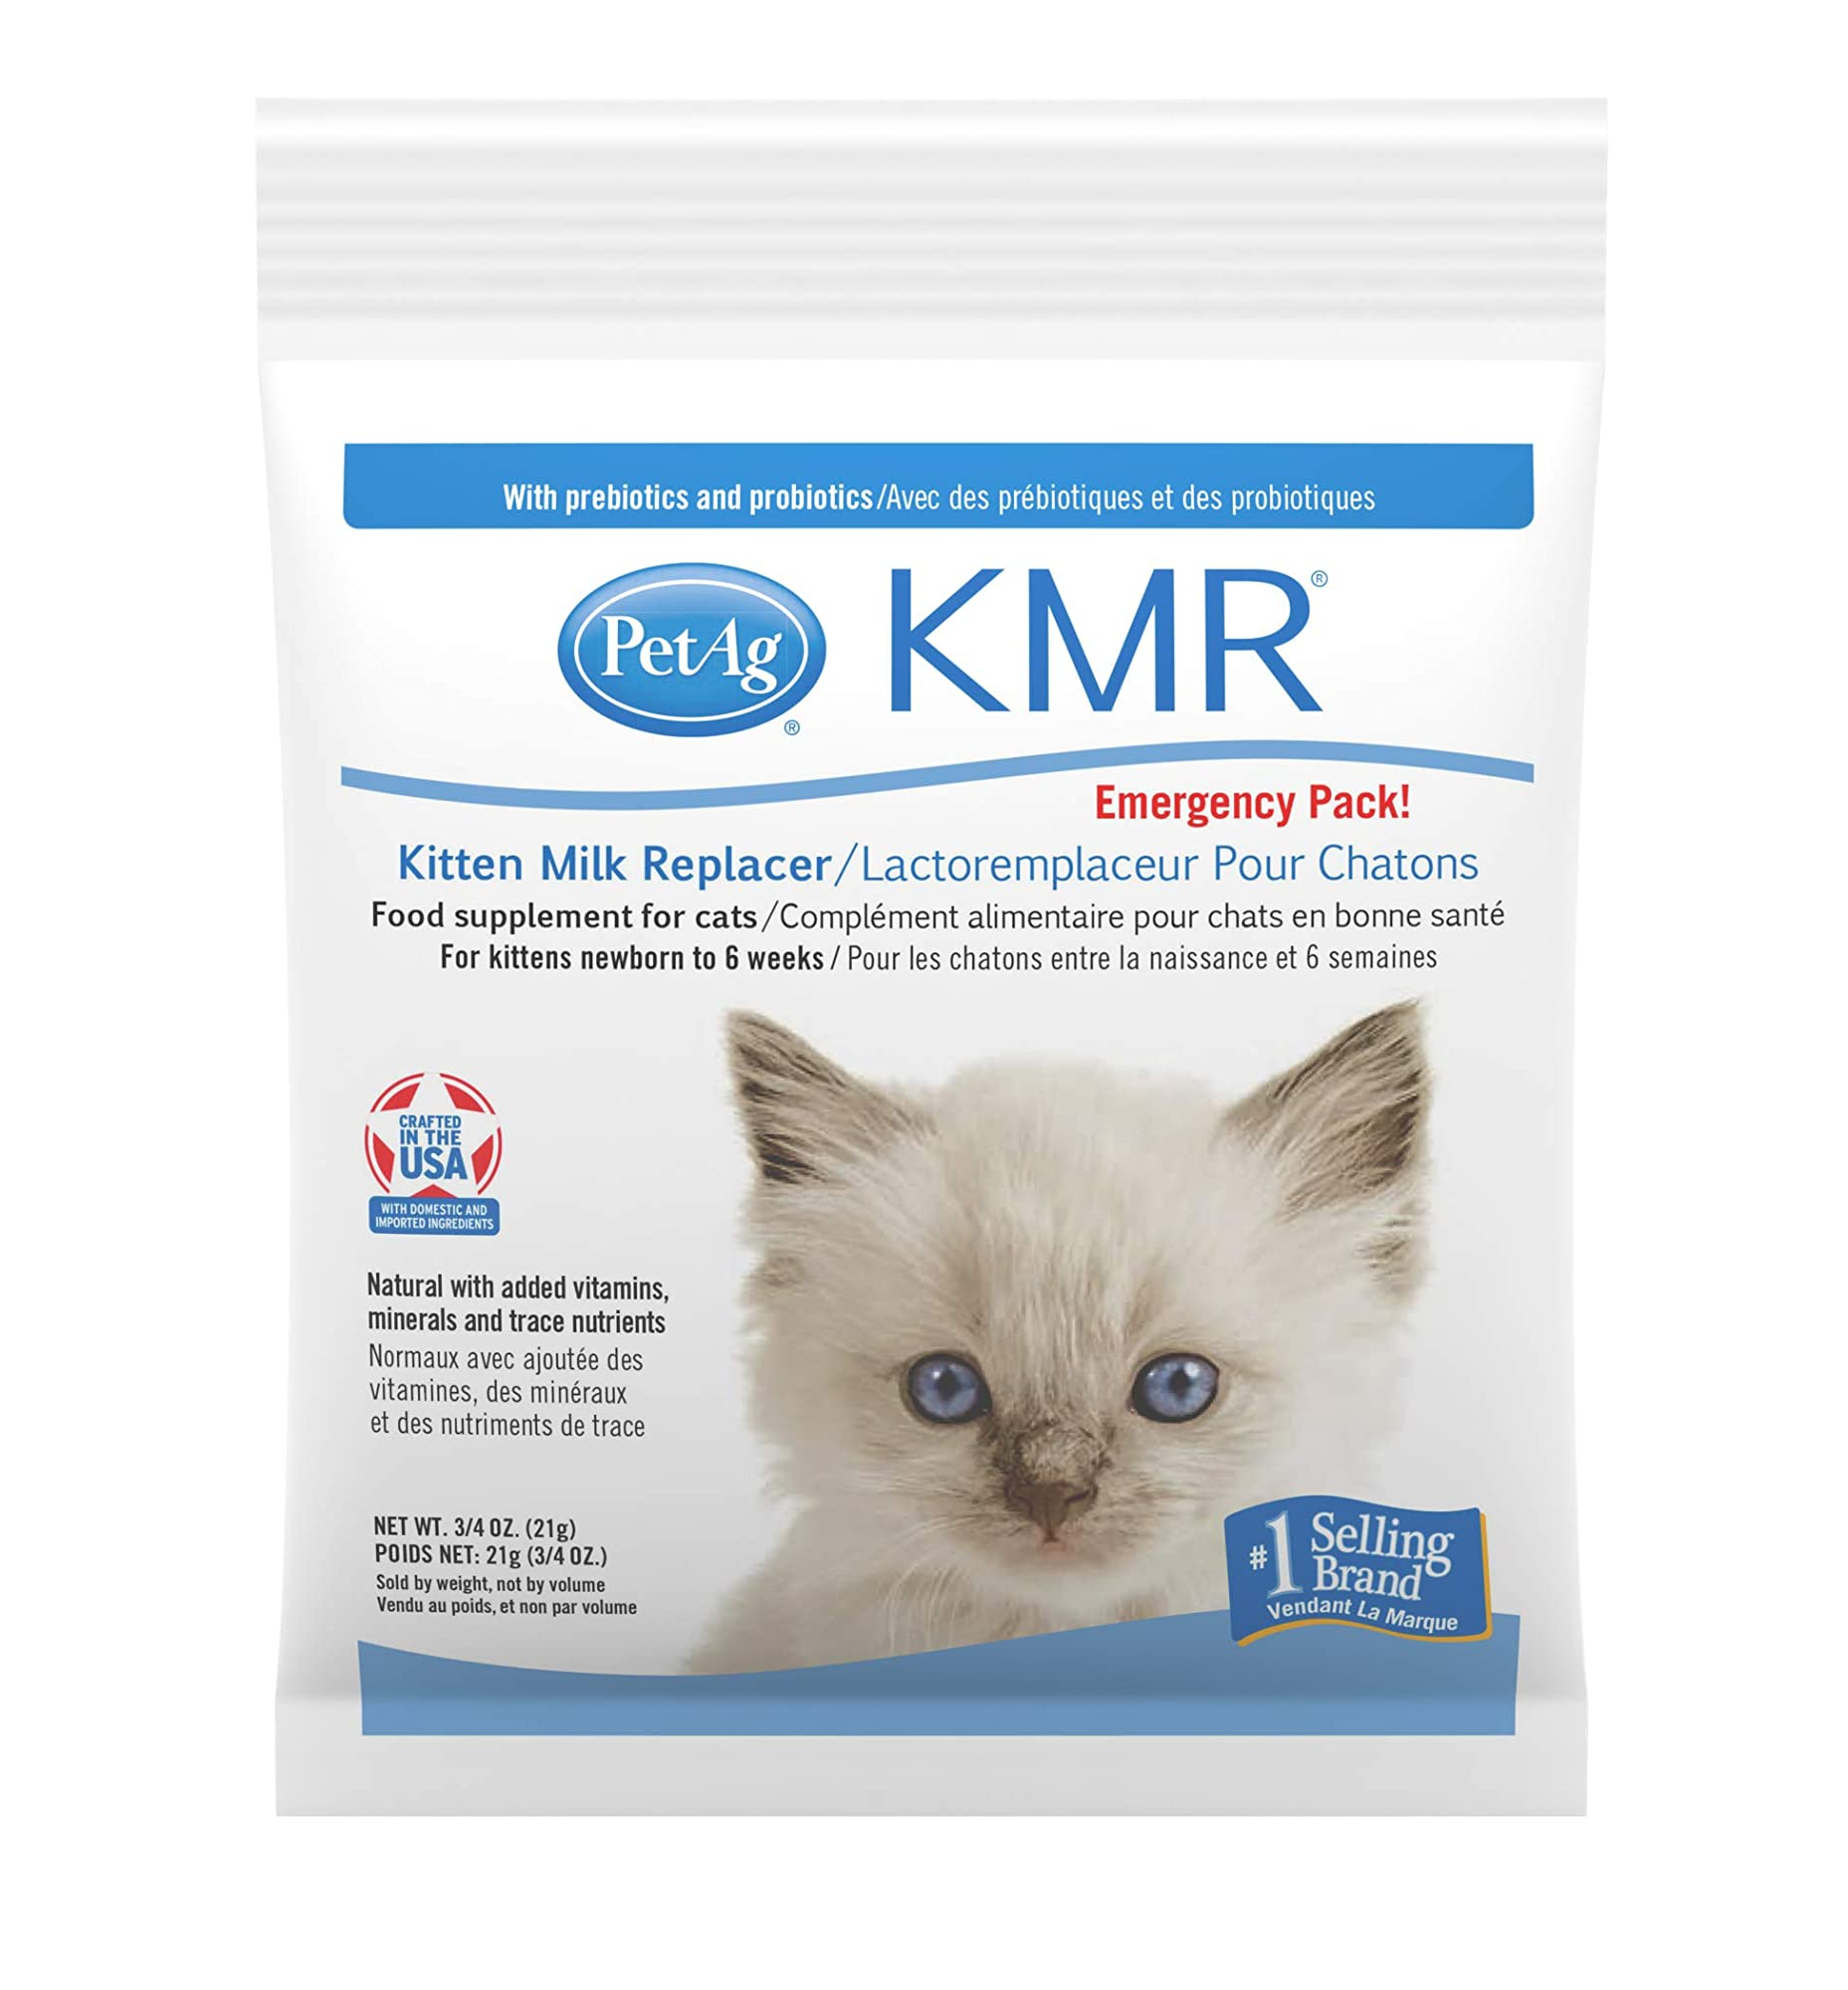 All Natural, No Preservatives Kitten Milk Replacer